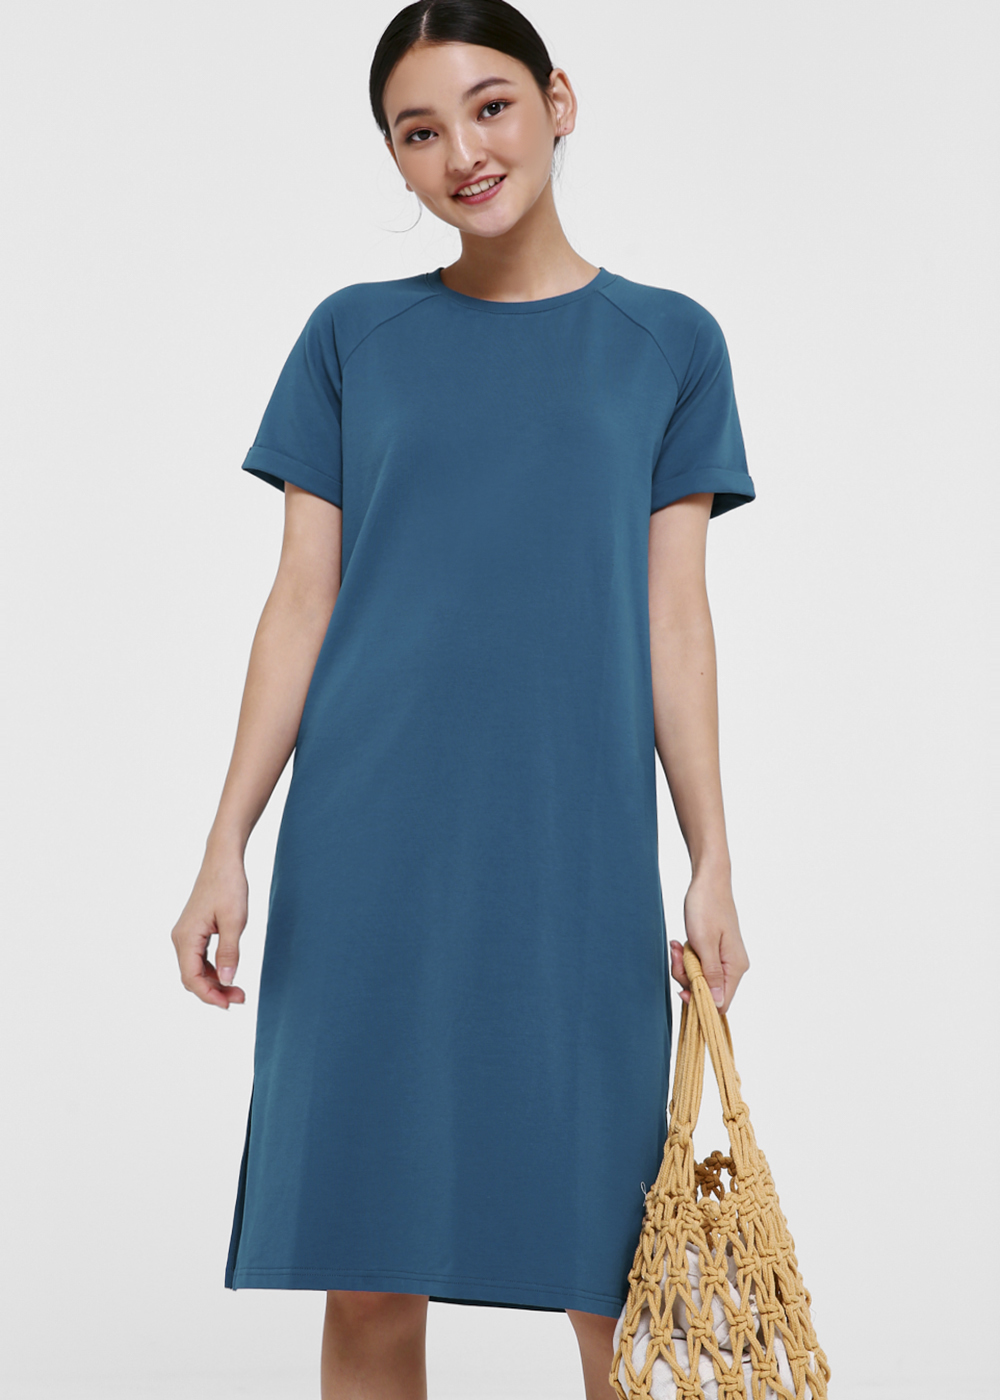 Daya Relaxed Midi T-shirt Dress